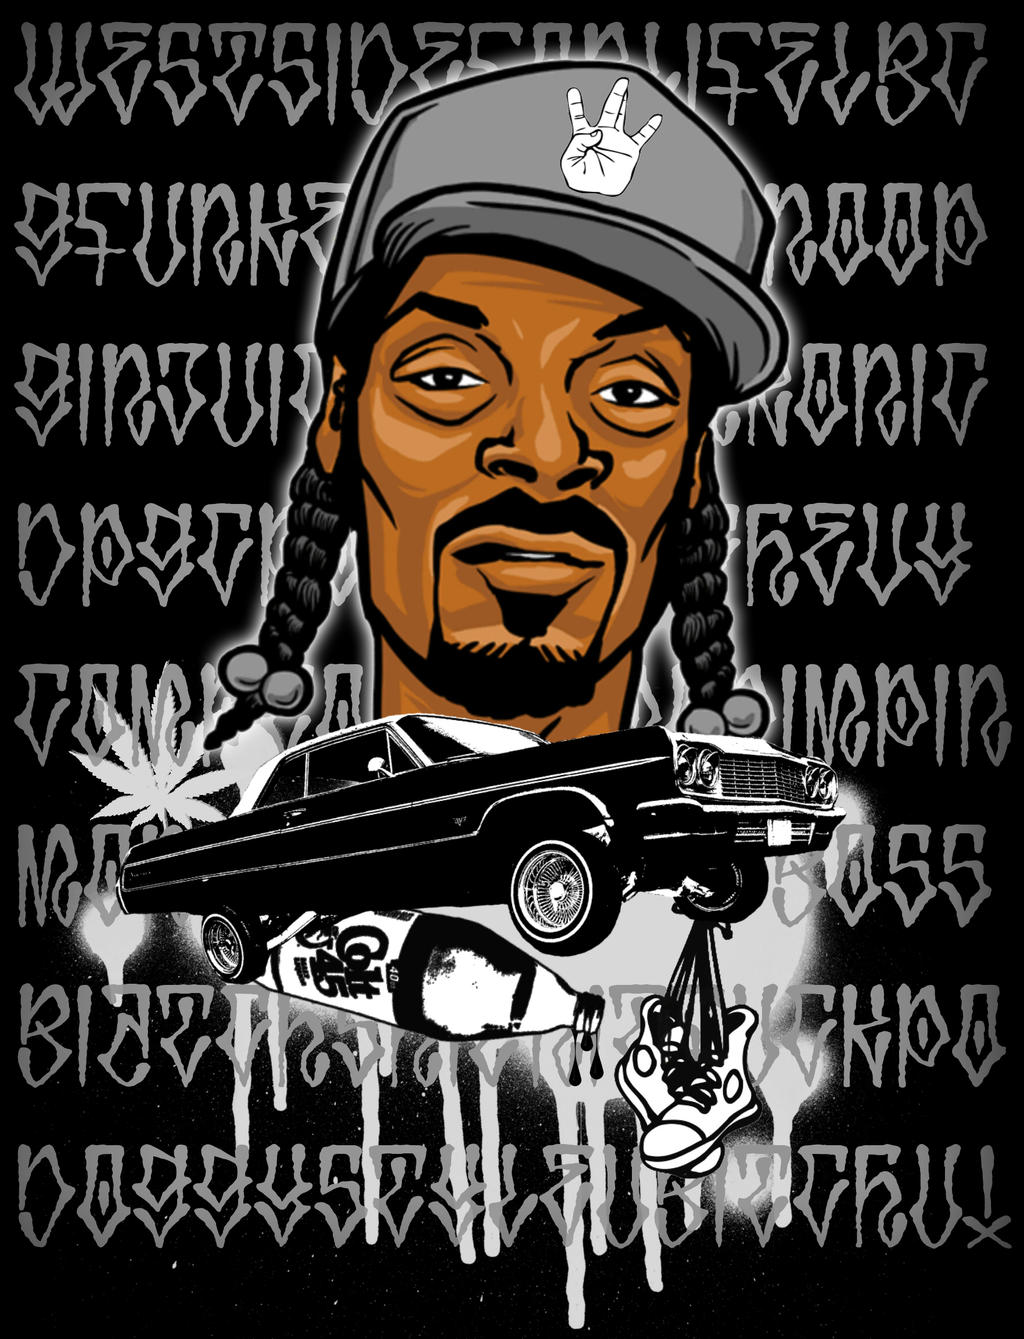 snoop doggy dogg by dns5 on deviantart